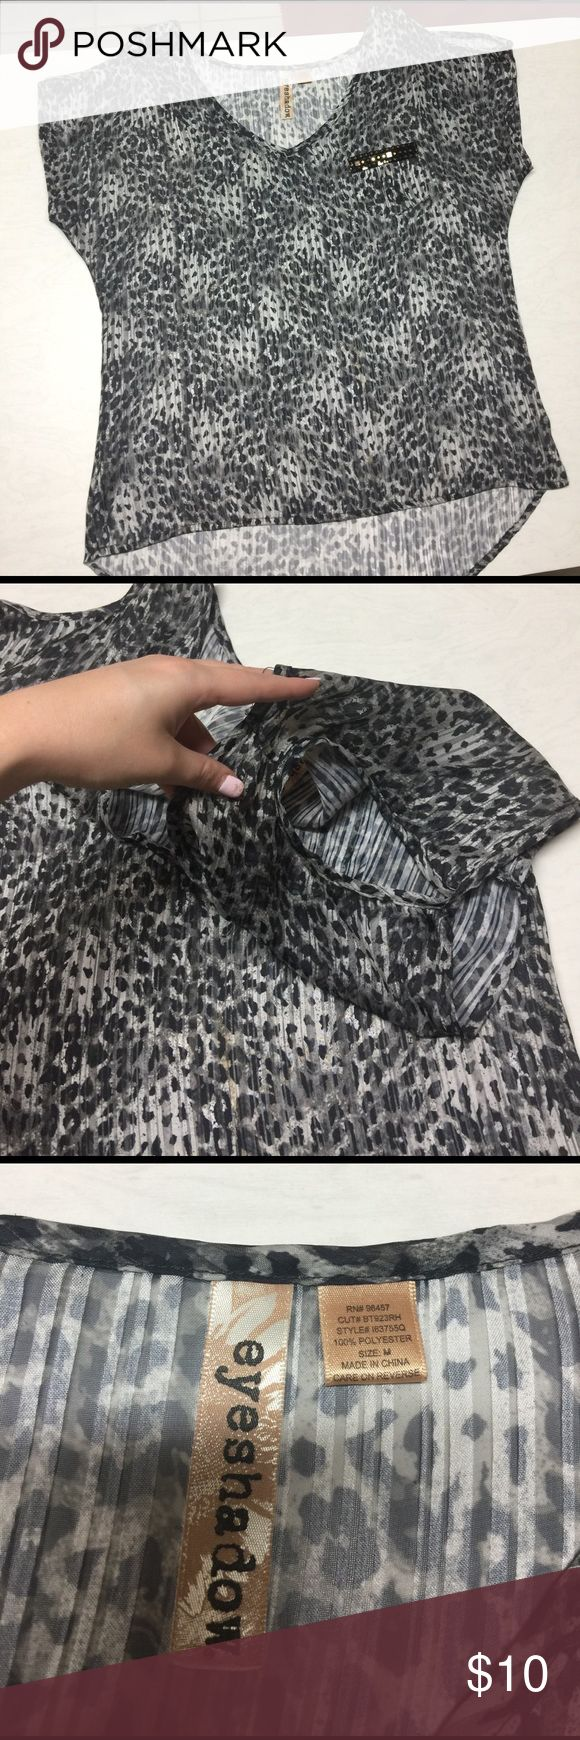 Open shoulder leopard top Open shoulder leopard top with high low bottom. Has gold and black sequins on pocket. Eyeshadow Tops